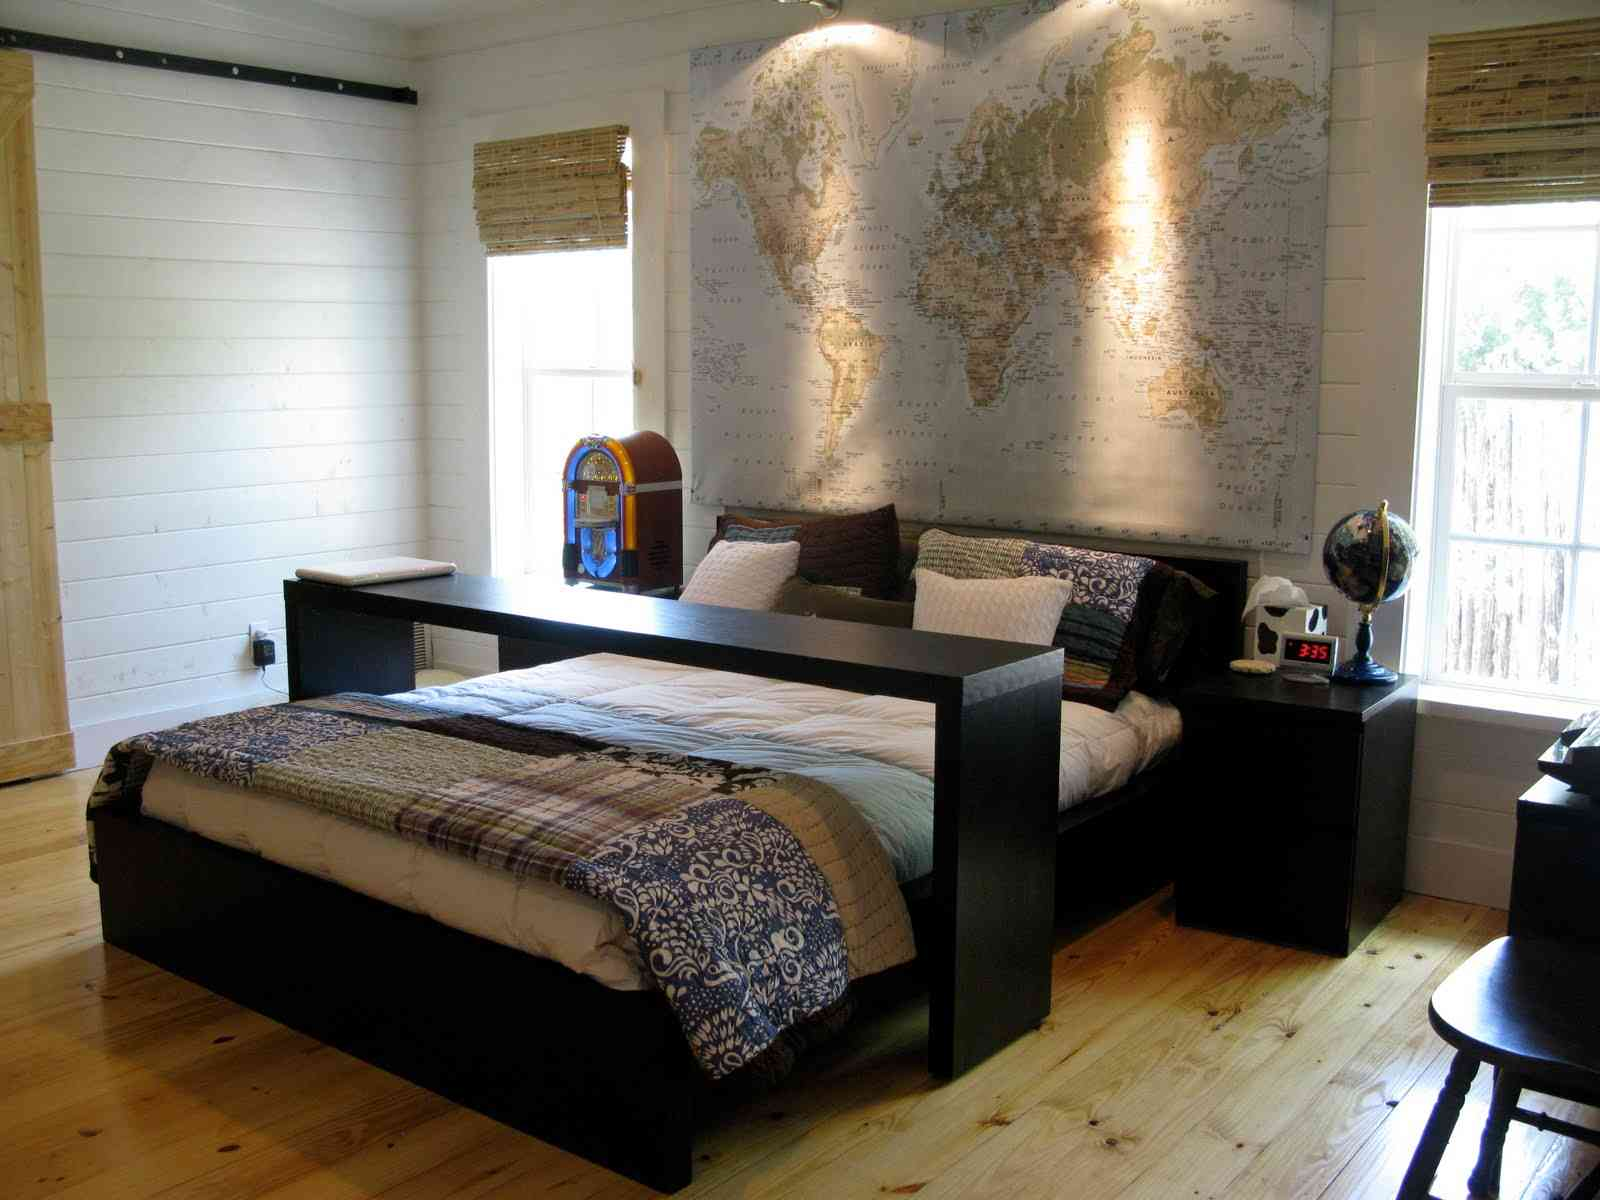 bedrooms bedroom furniture from ikea new bedrooms bedroom furniture - Bedroom Ideas With Ikea Furniture